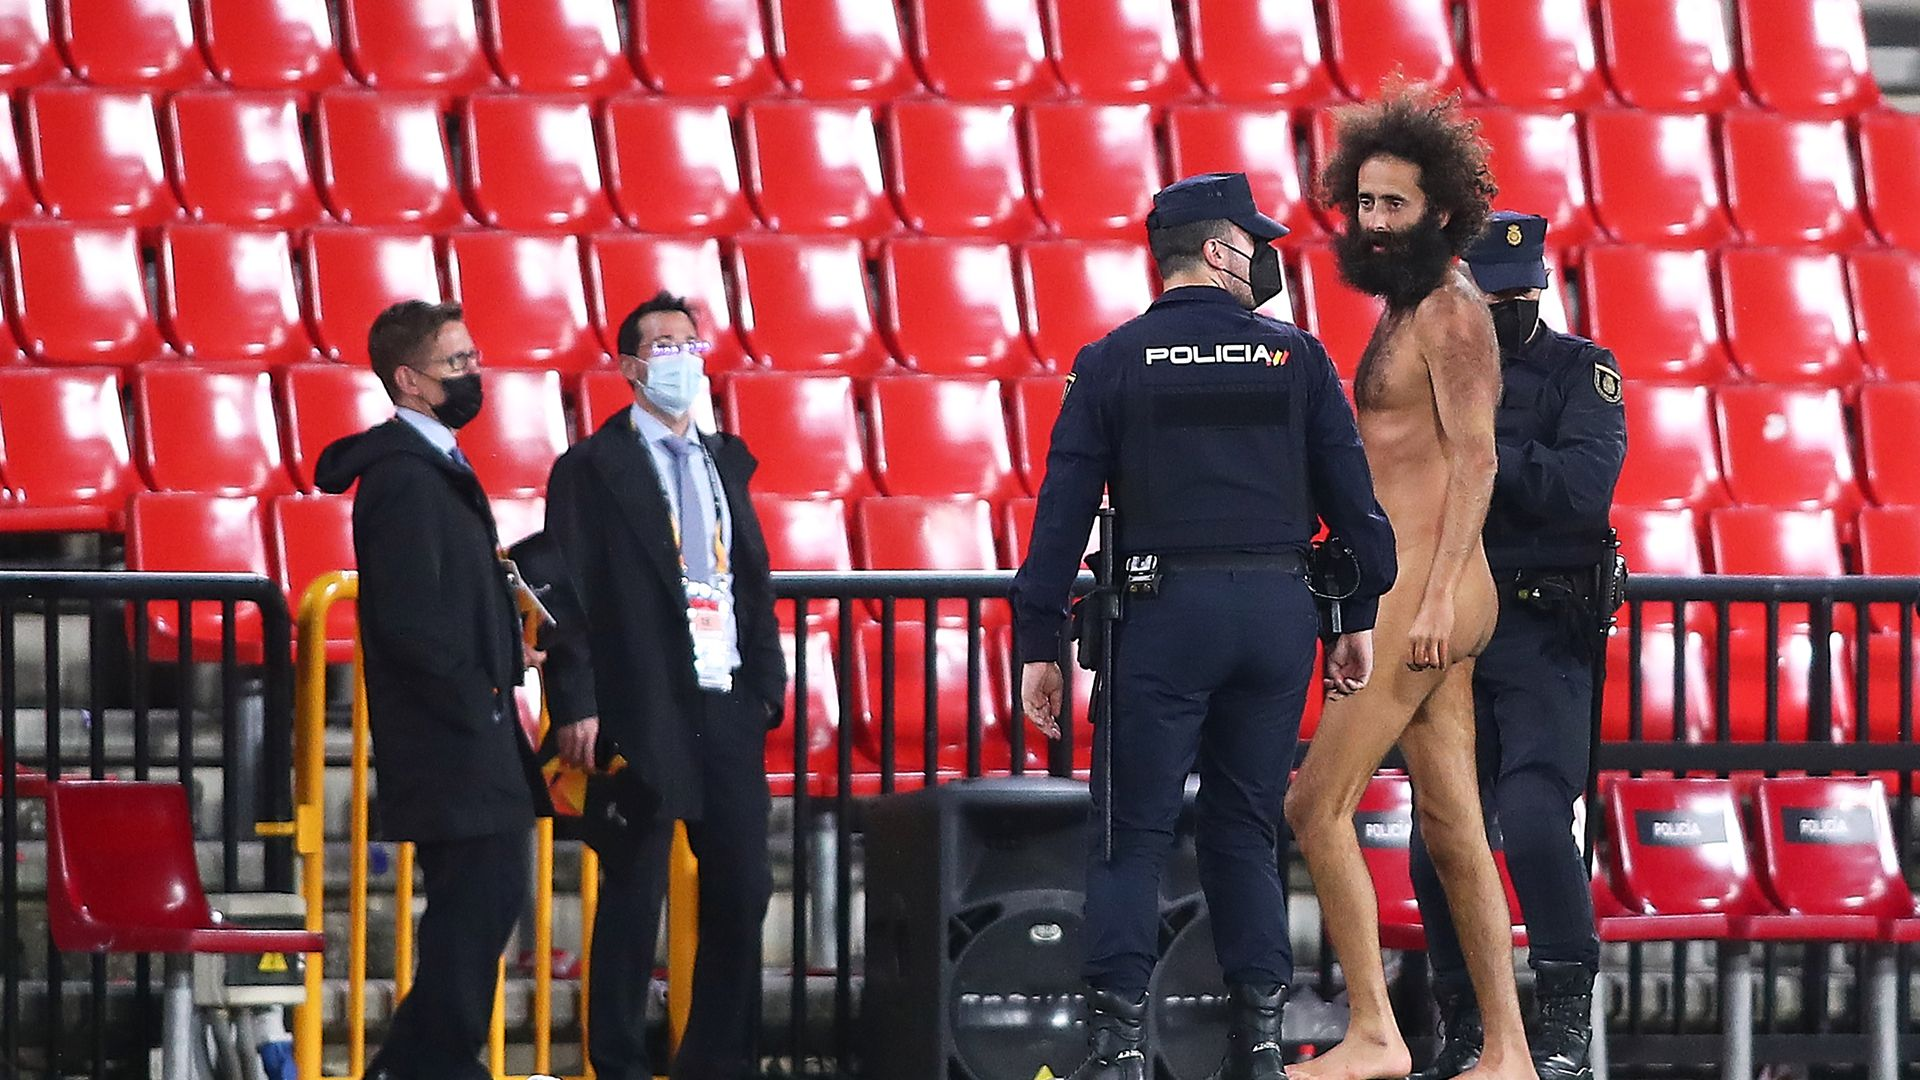 Streaker Olmo Garcia is removed from the pitch during the UEFA Europa League quarter-final first leg match between Granada CF and Manchester United at Los Carmenes on April 08, 2021 - Credit: Photo by Fran Santiago/Getty Images